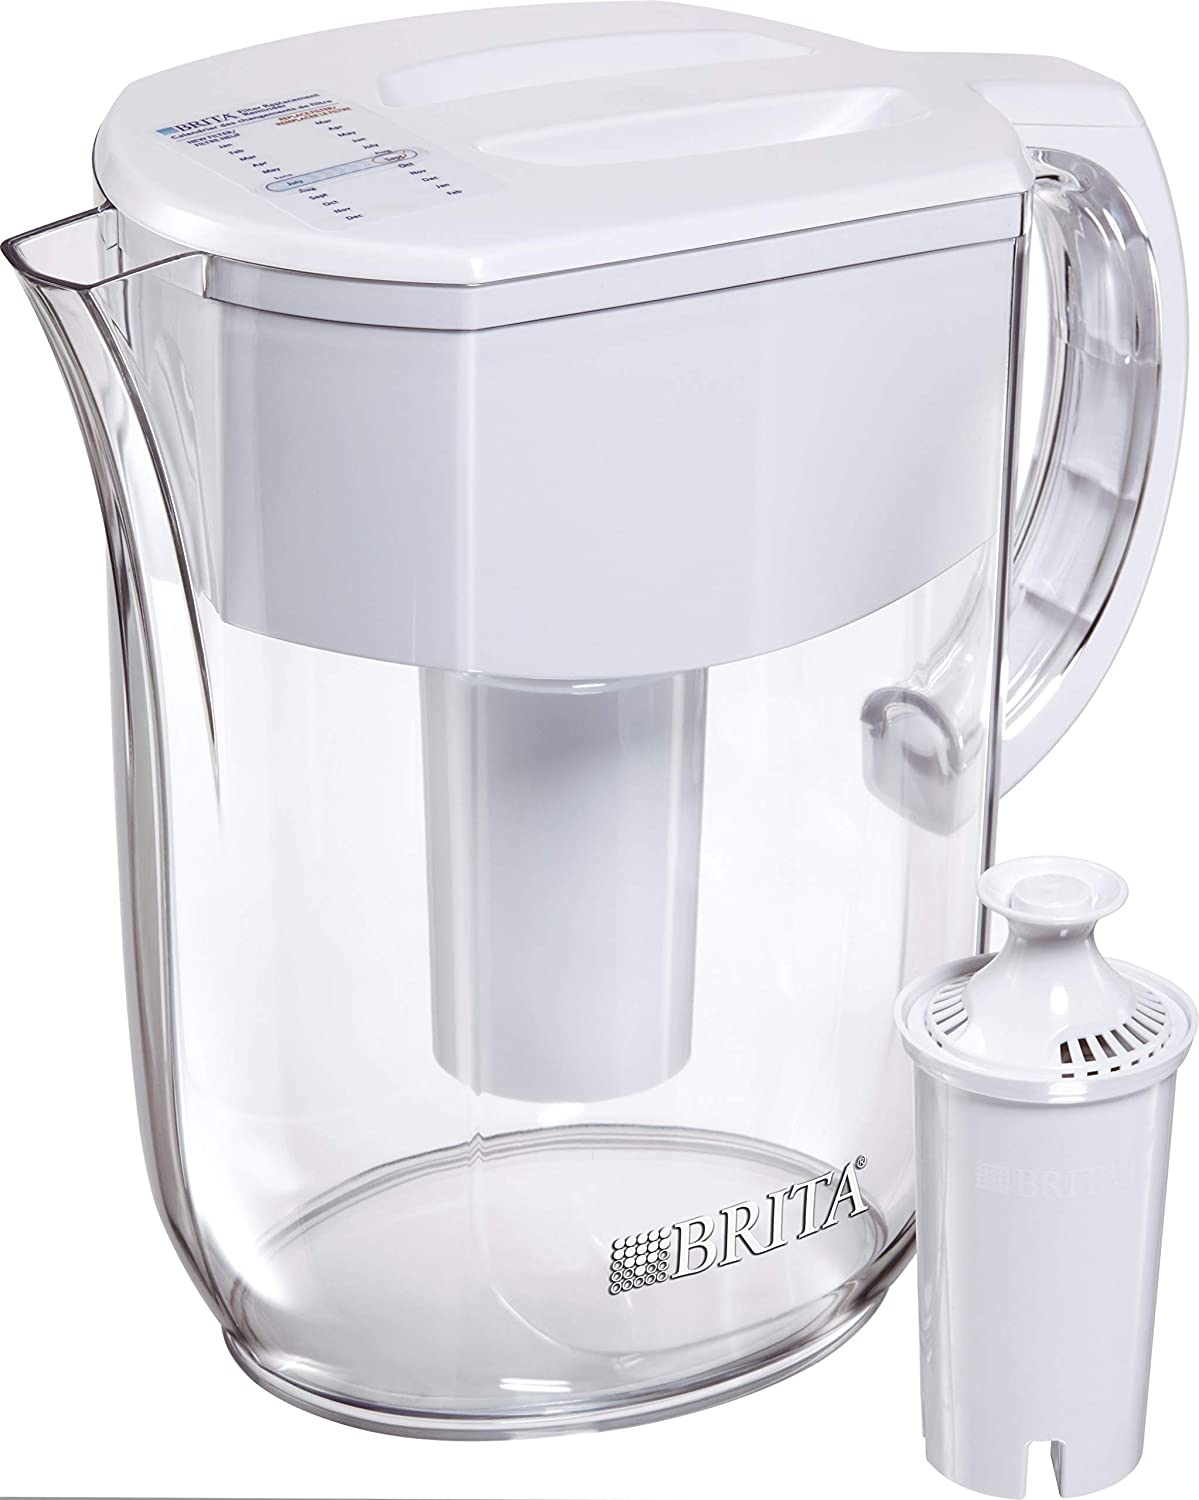 what does a brita filter remove